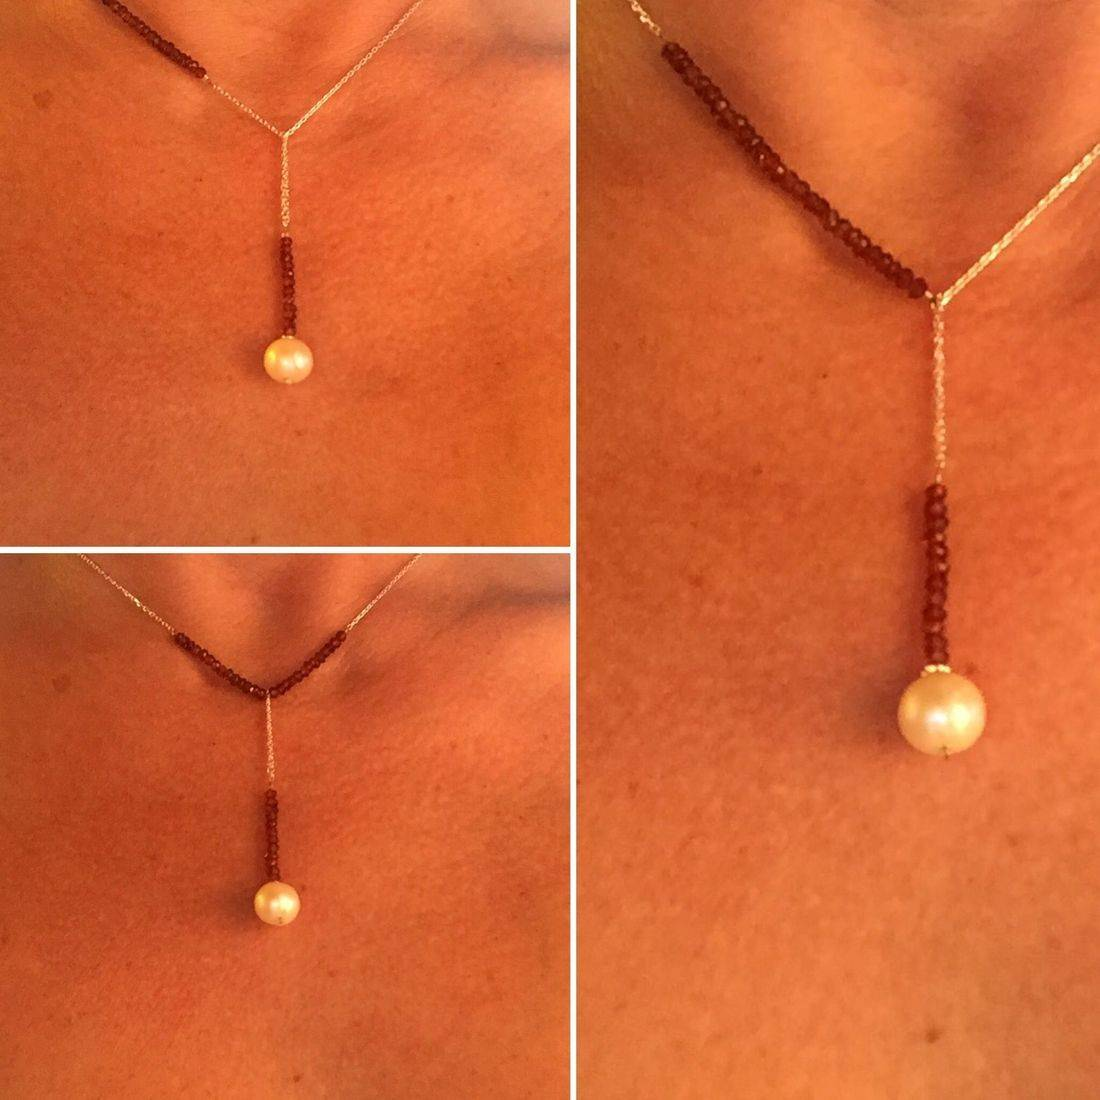 silver and garnet gemstone bar necklace with freshwater pearl pendant